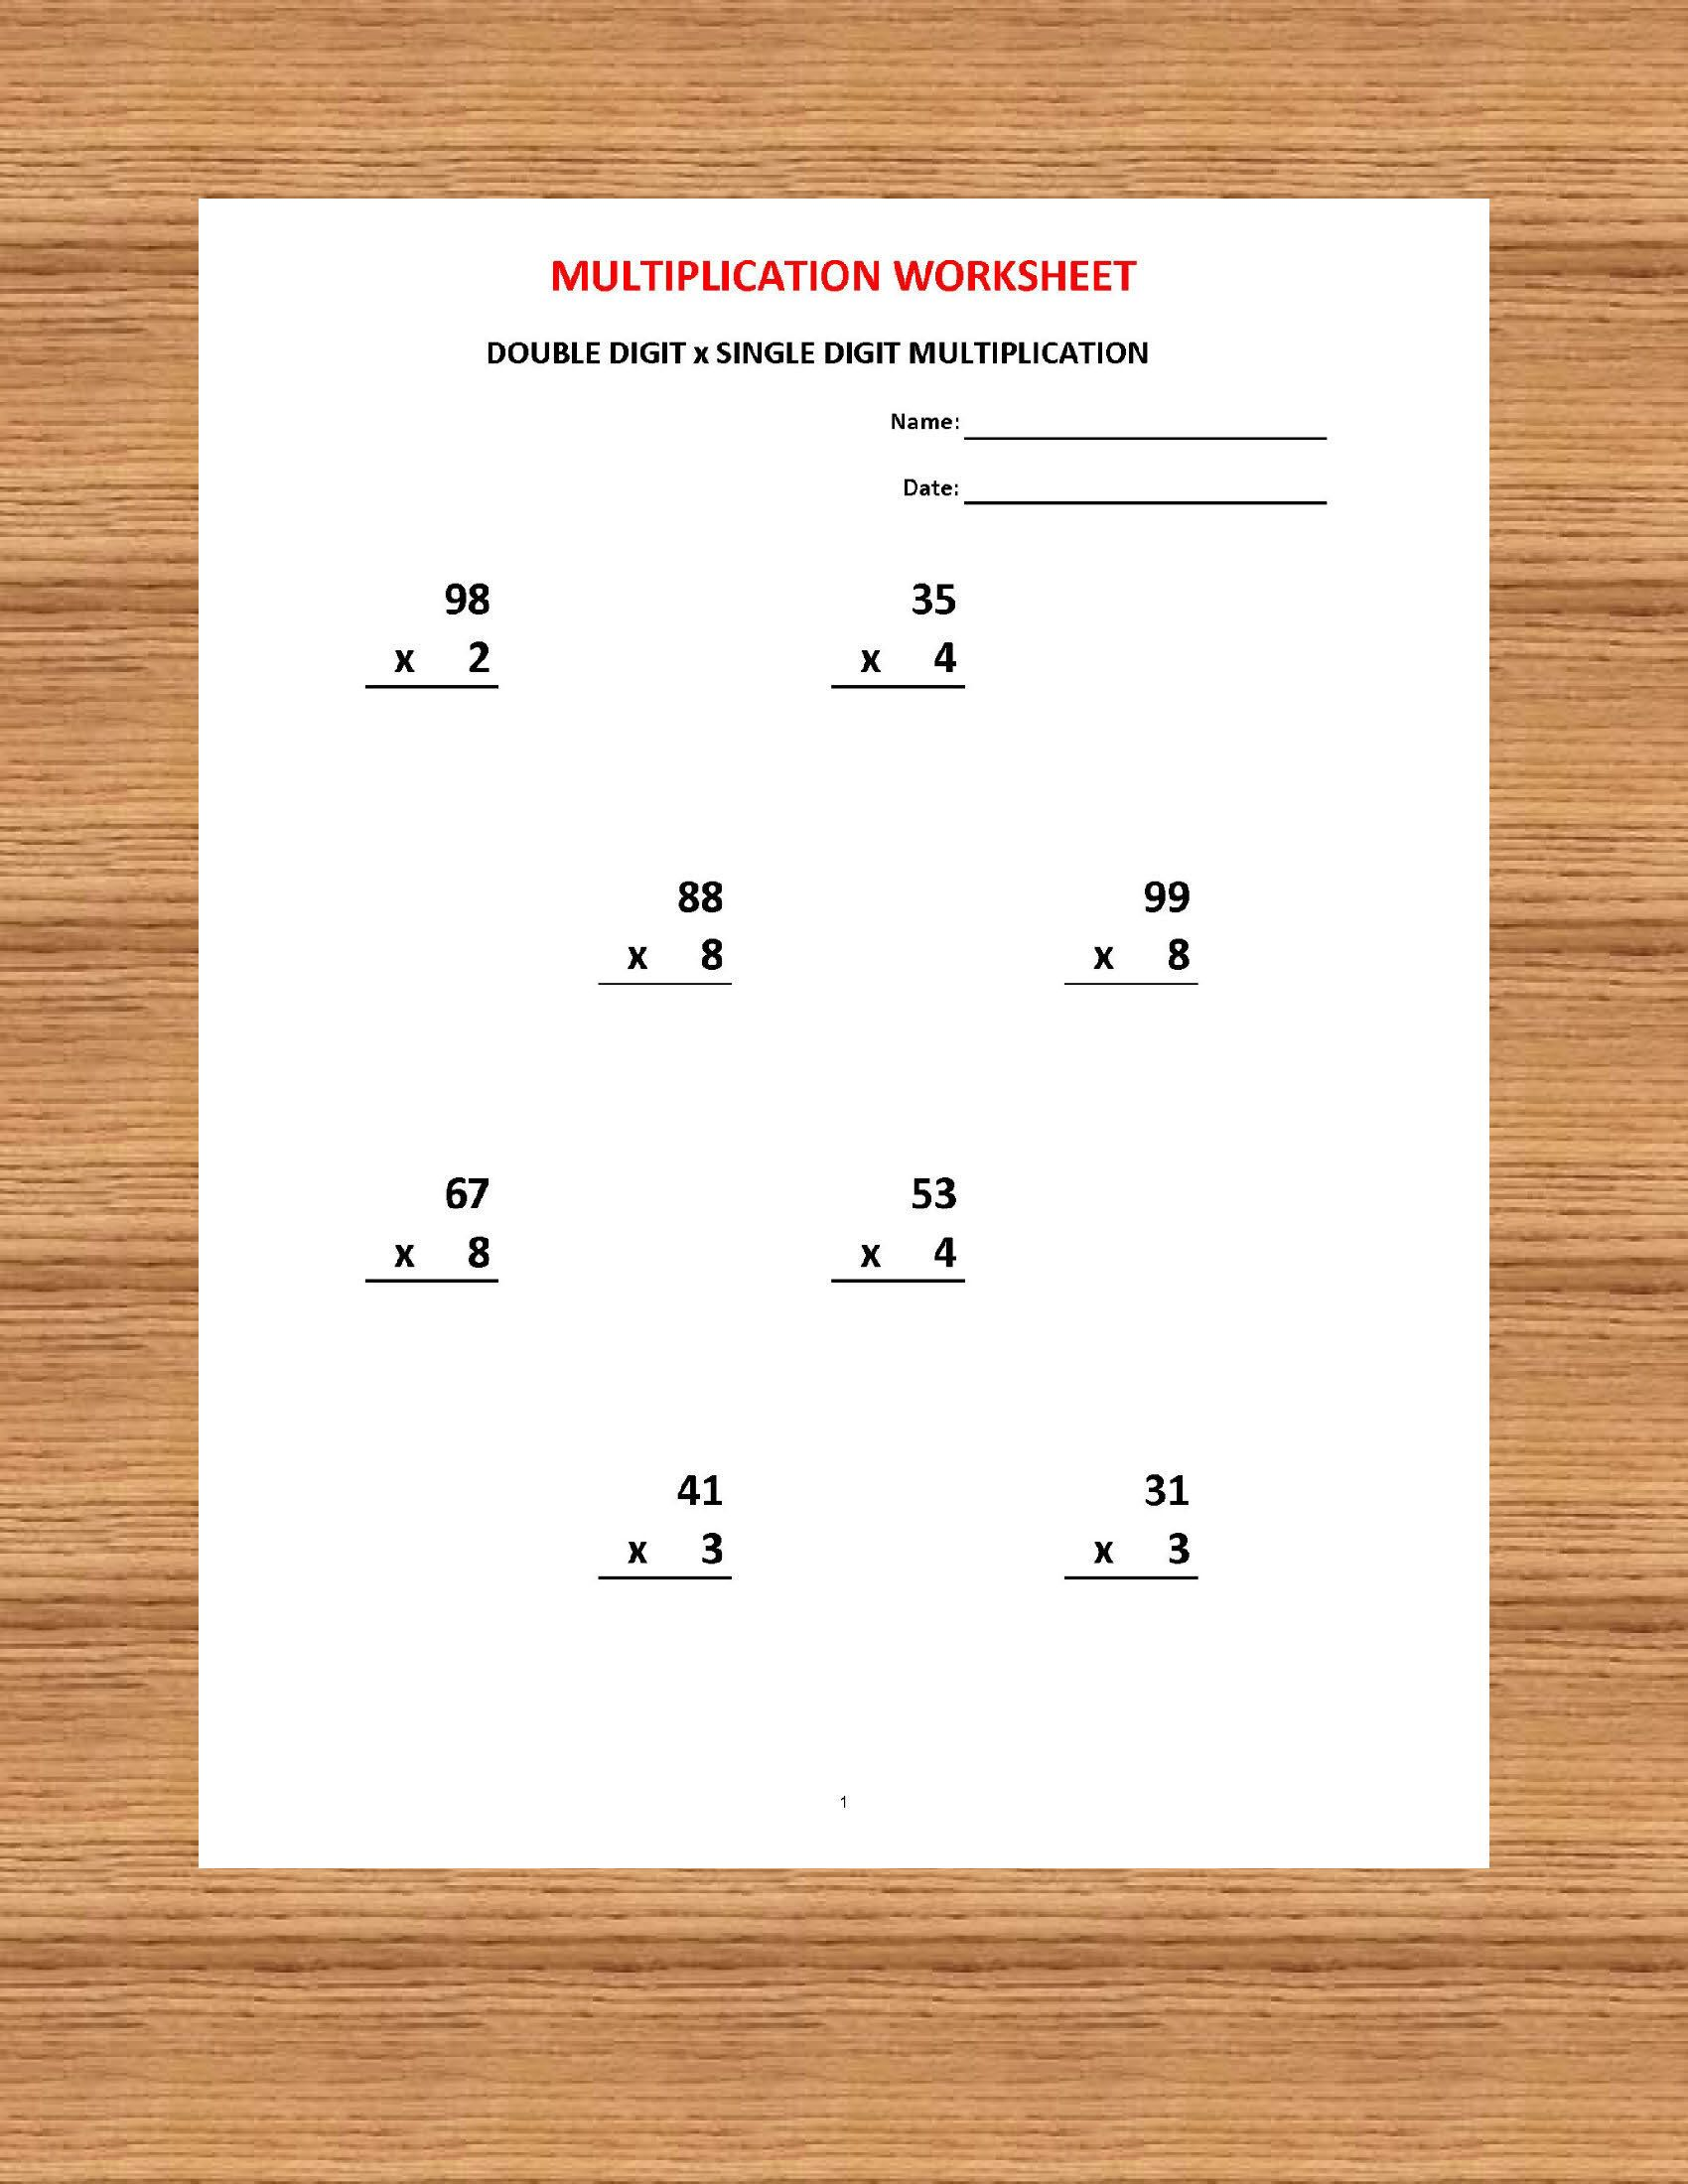 Addition 1 minute drill H 10 math worksheets with answers   Etsy   Math  addition worksheets [ 2200 x 1700 Pixel ]